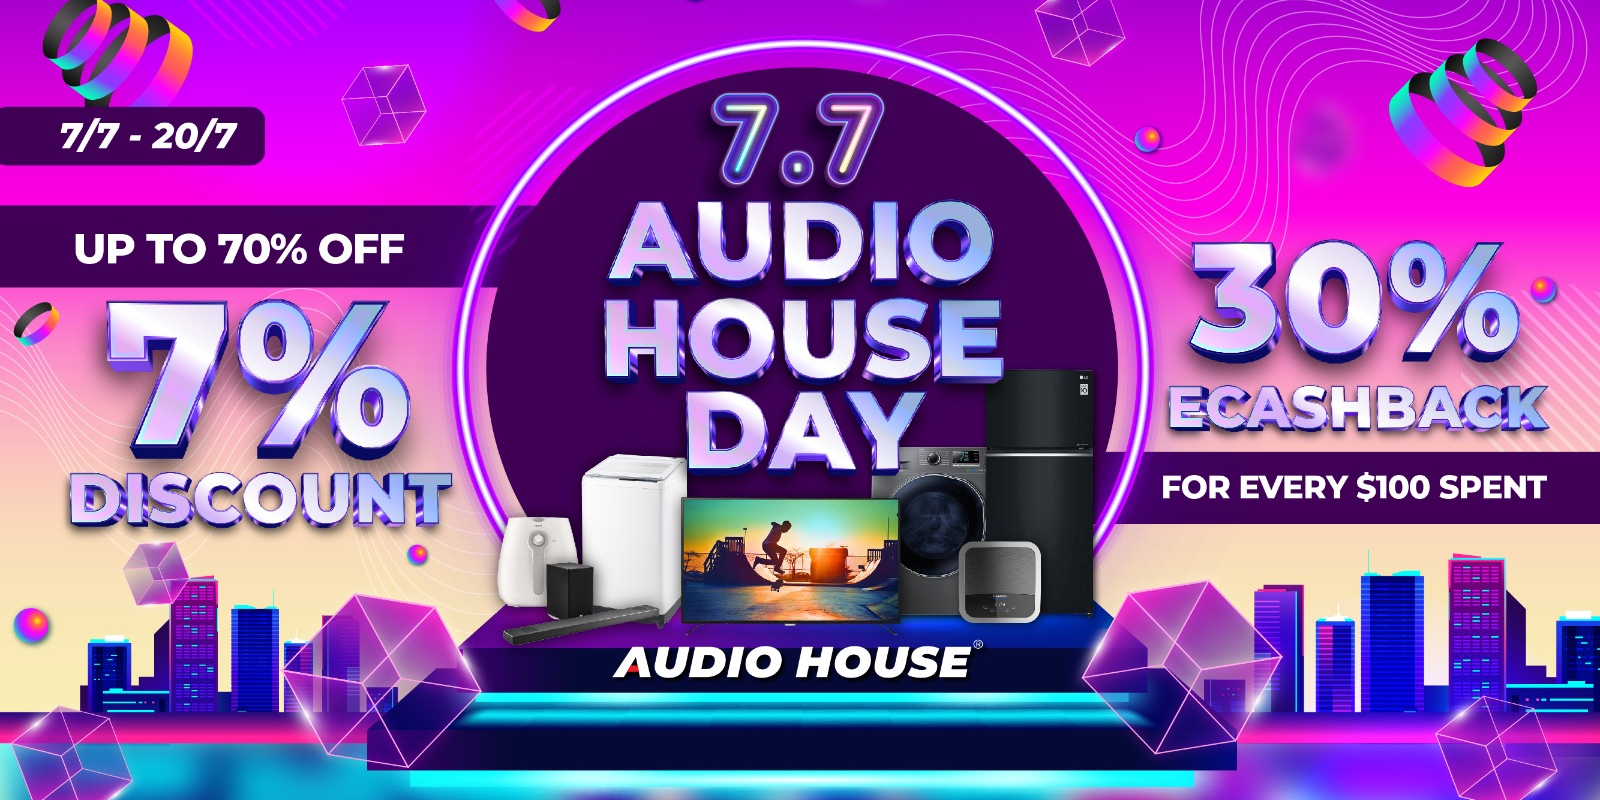 [7.7 Audio House Day] Enjoy 7% Storewide Discount + 30% eCashback with Every $100 Spent!